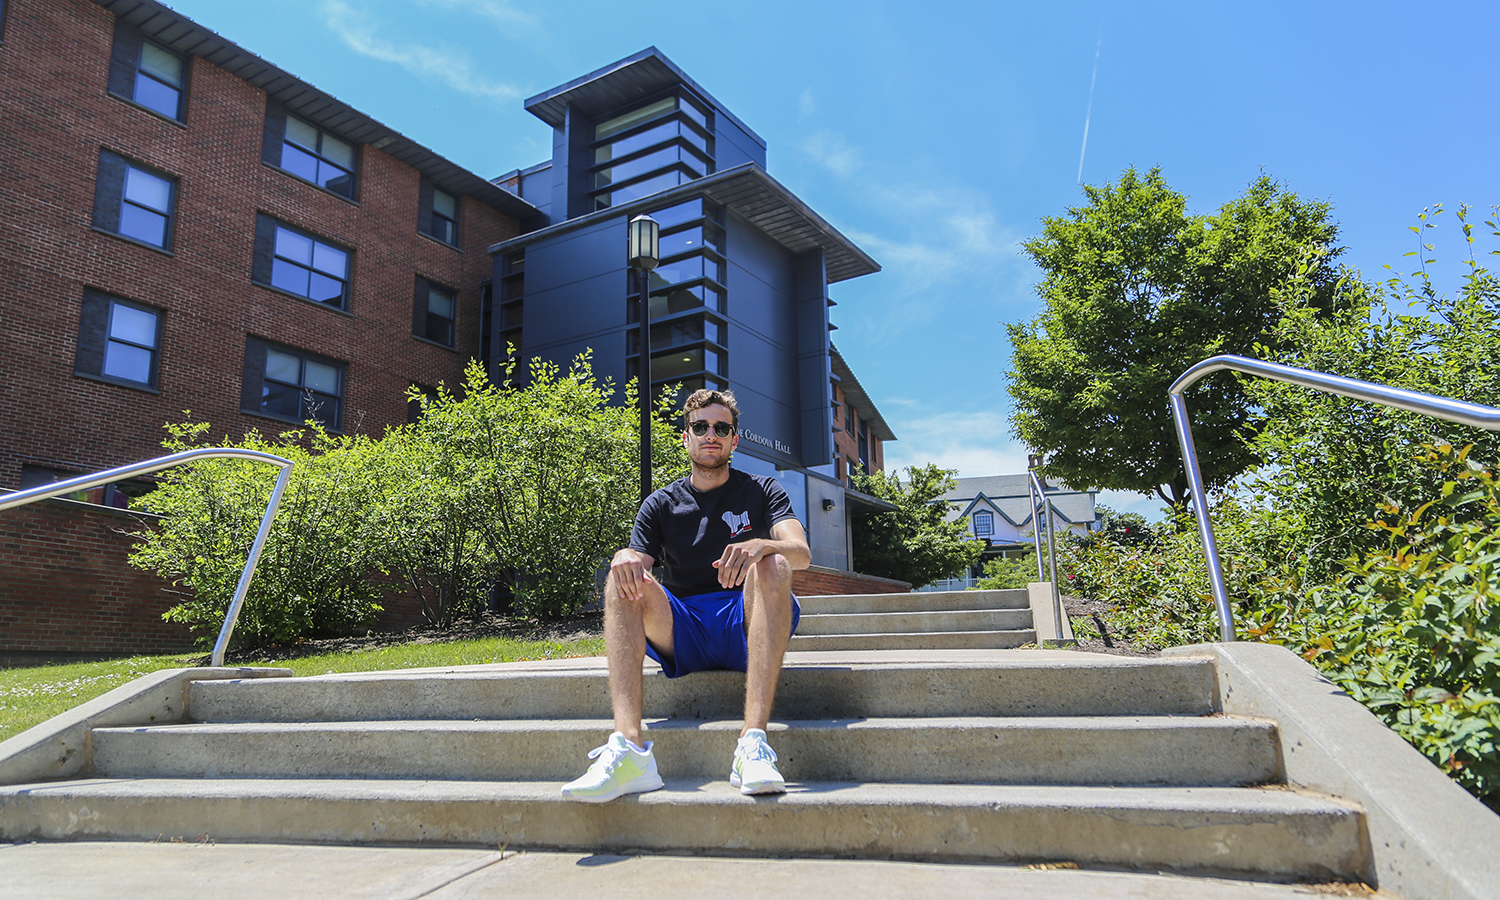 Harrison Demara, Pitch semi-finalist, is staying on campus this summer participting in the Summer Sandbox Idea Accelerator lead by Ed Bizari, the Margiloff Family Entrepreneurial Fellow. His favourite place on campus is the steps leading to DeCordova.